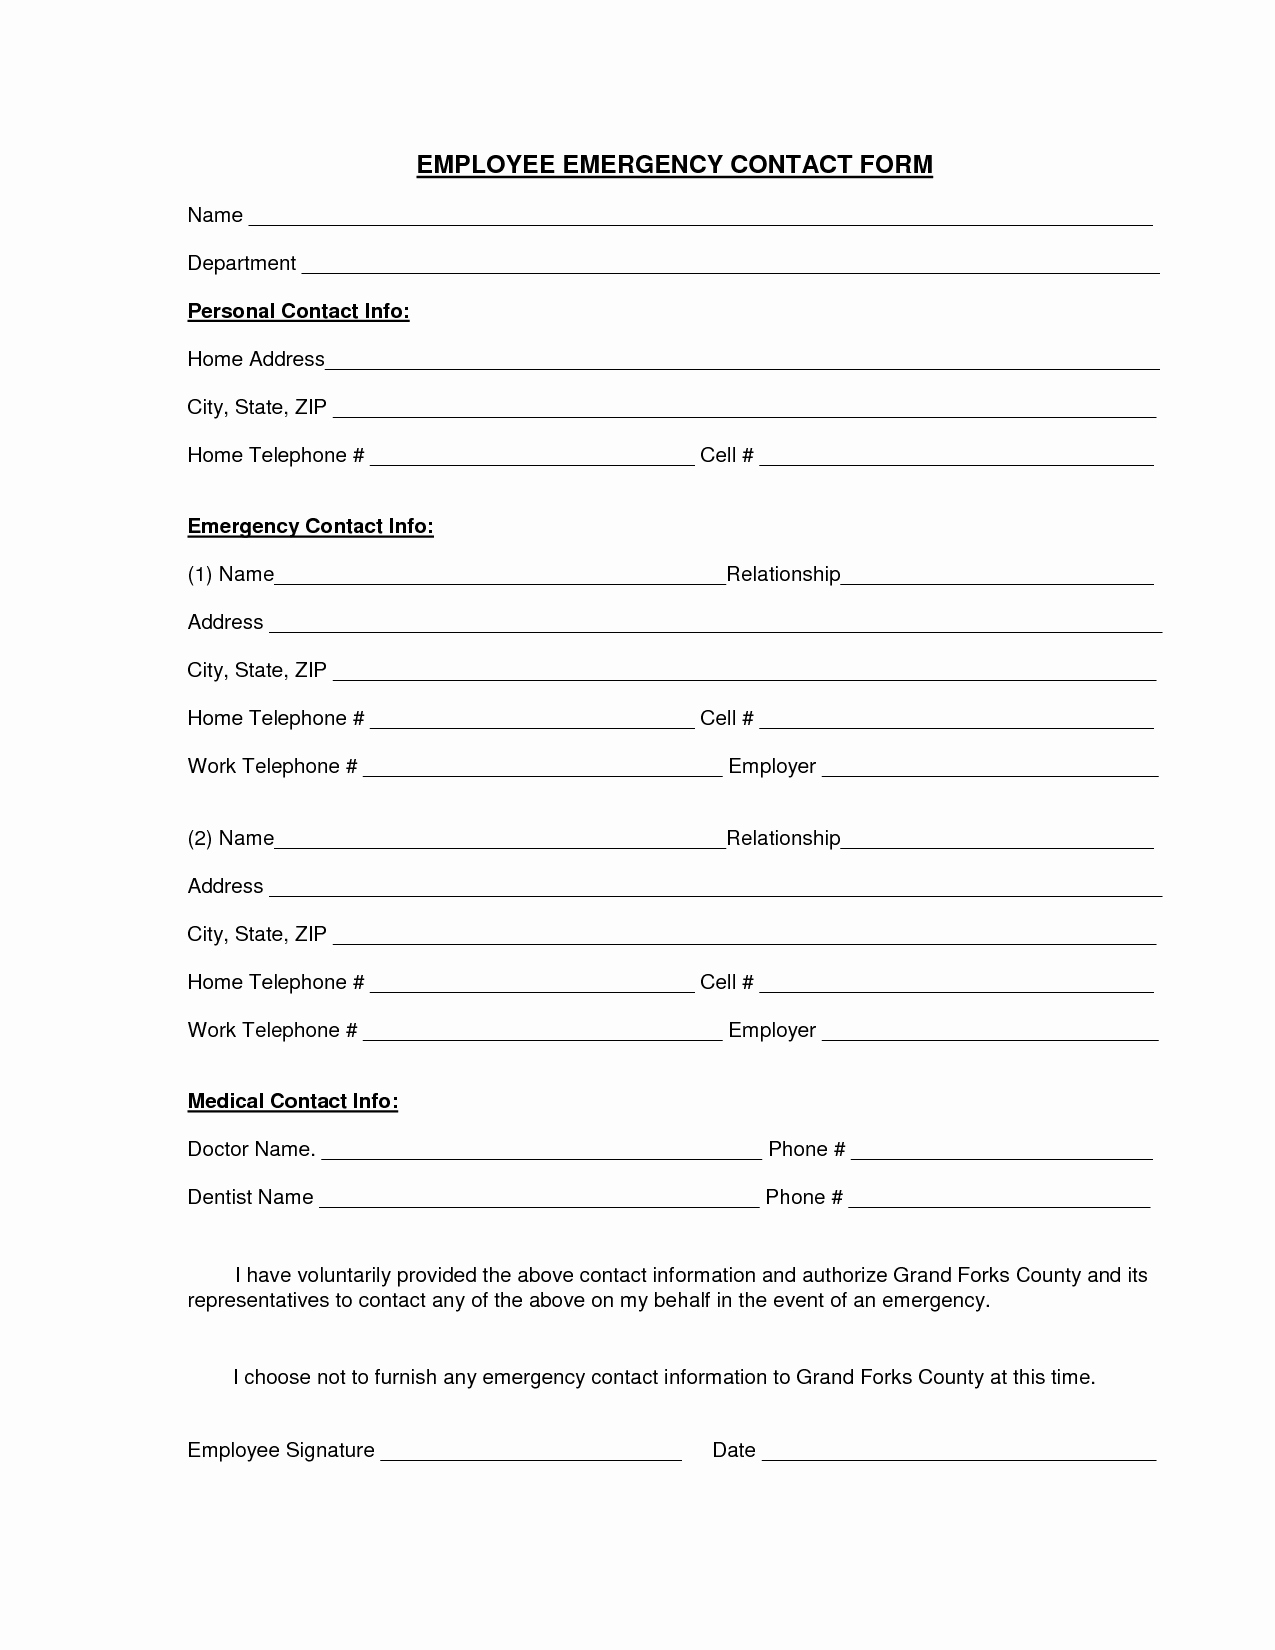 Emergency Contact form Template Free Luxury Download A Free Emergency Contact form and Emergency Card